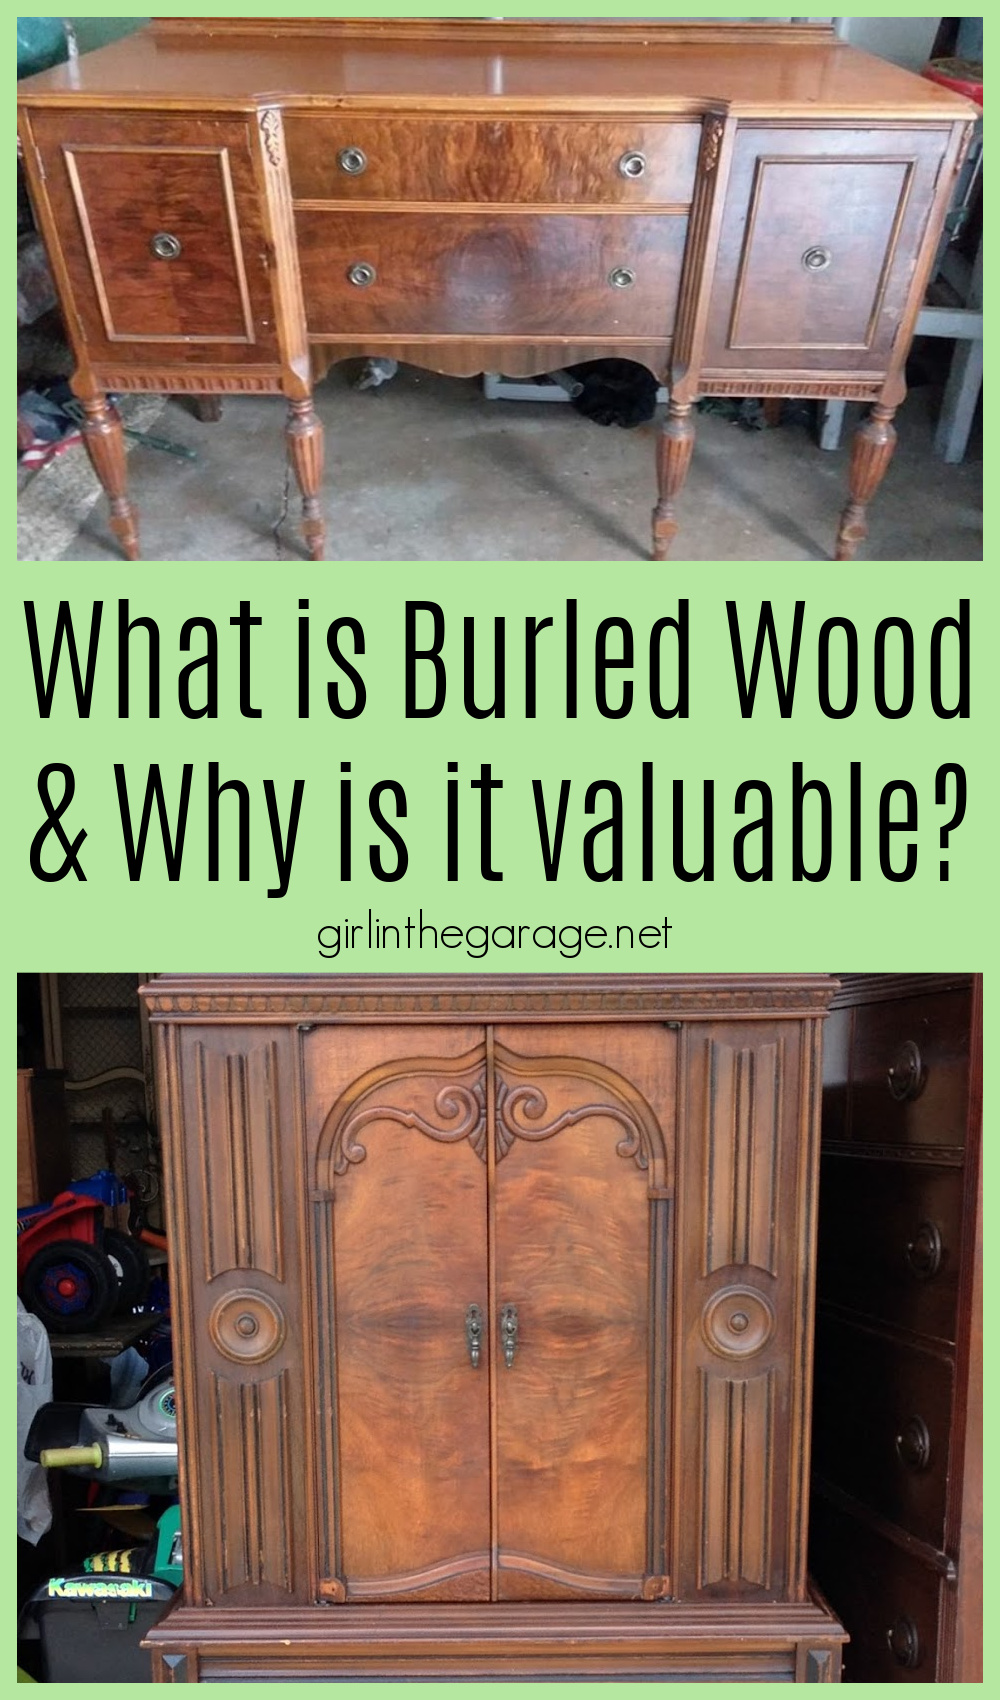 Learn the fascinating history of burled wood and discover why it's so rare and valuable. Also see several examples of burl wood furniture. By Girl in the Garage